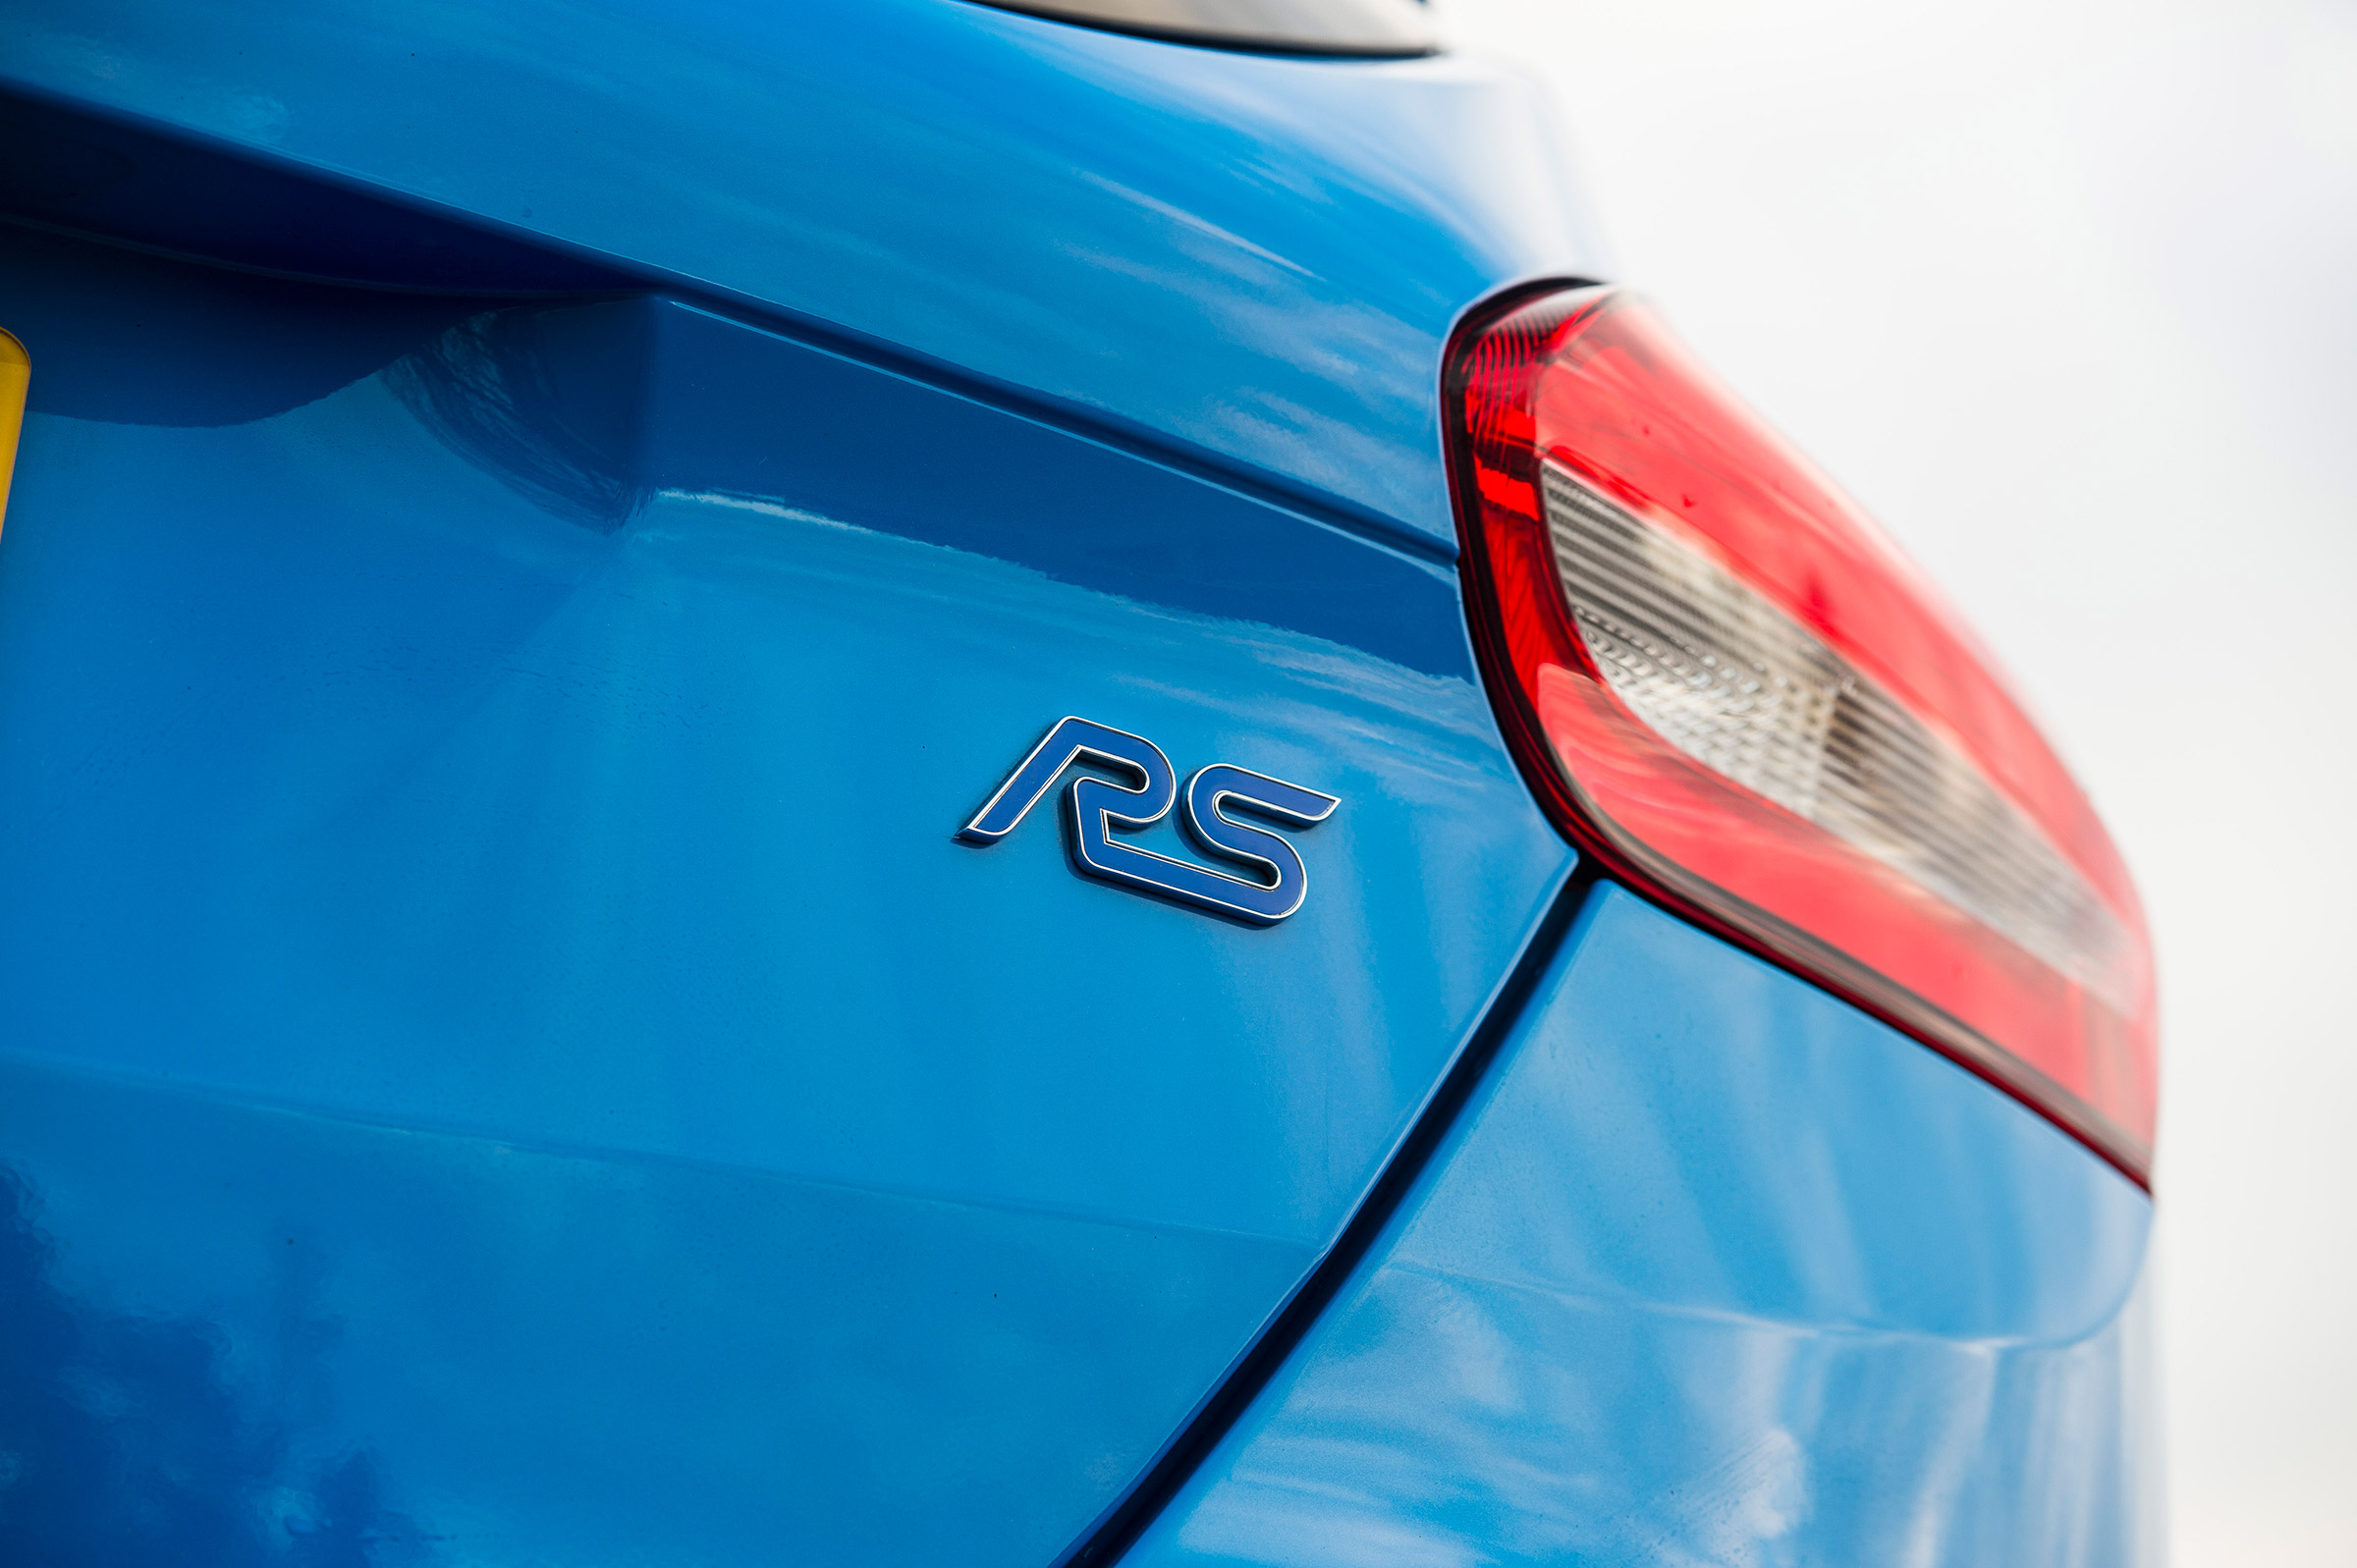 2017 Ford Focus RS Exterior View Rear Emblem (View 5 of 23)